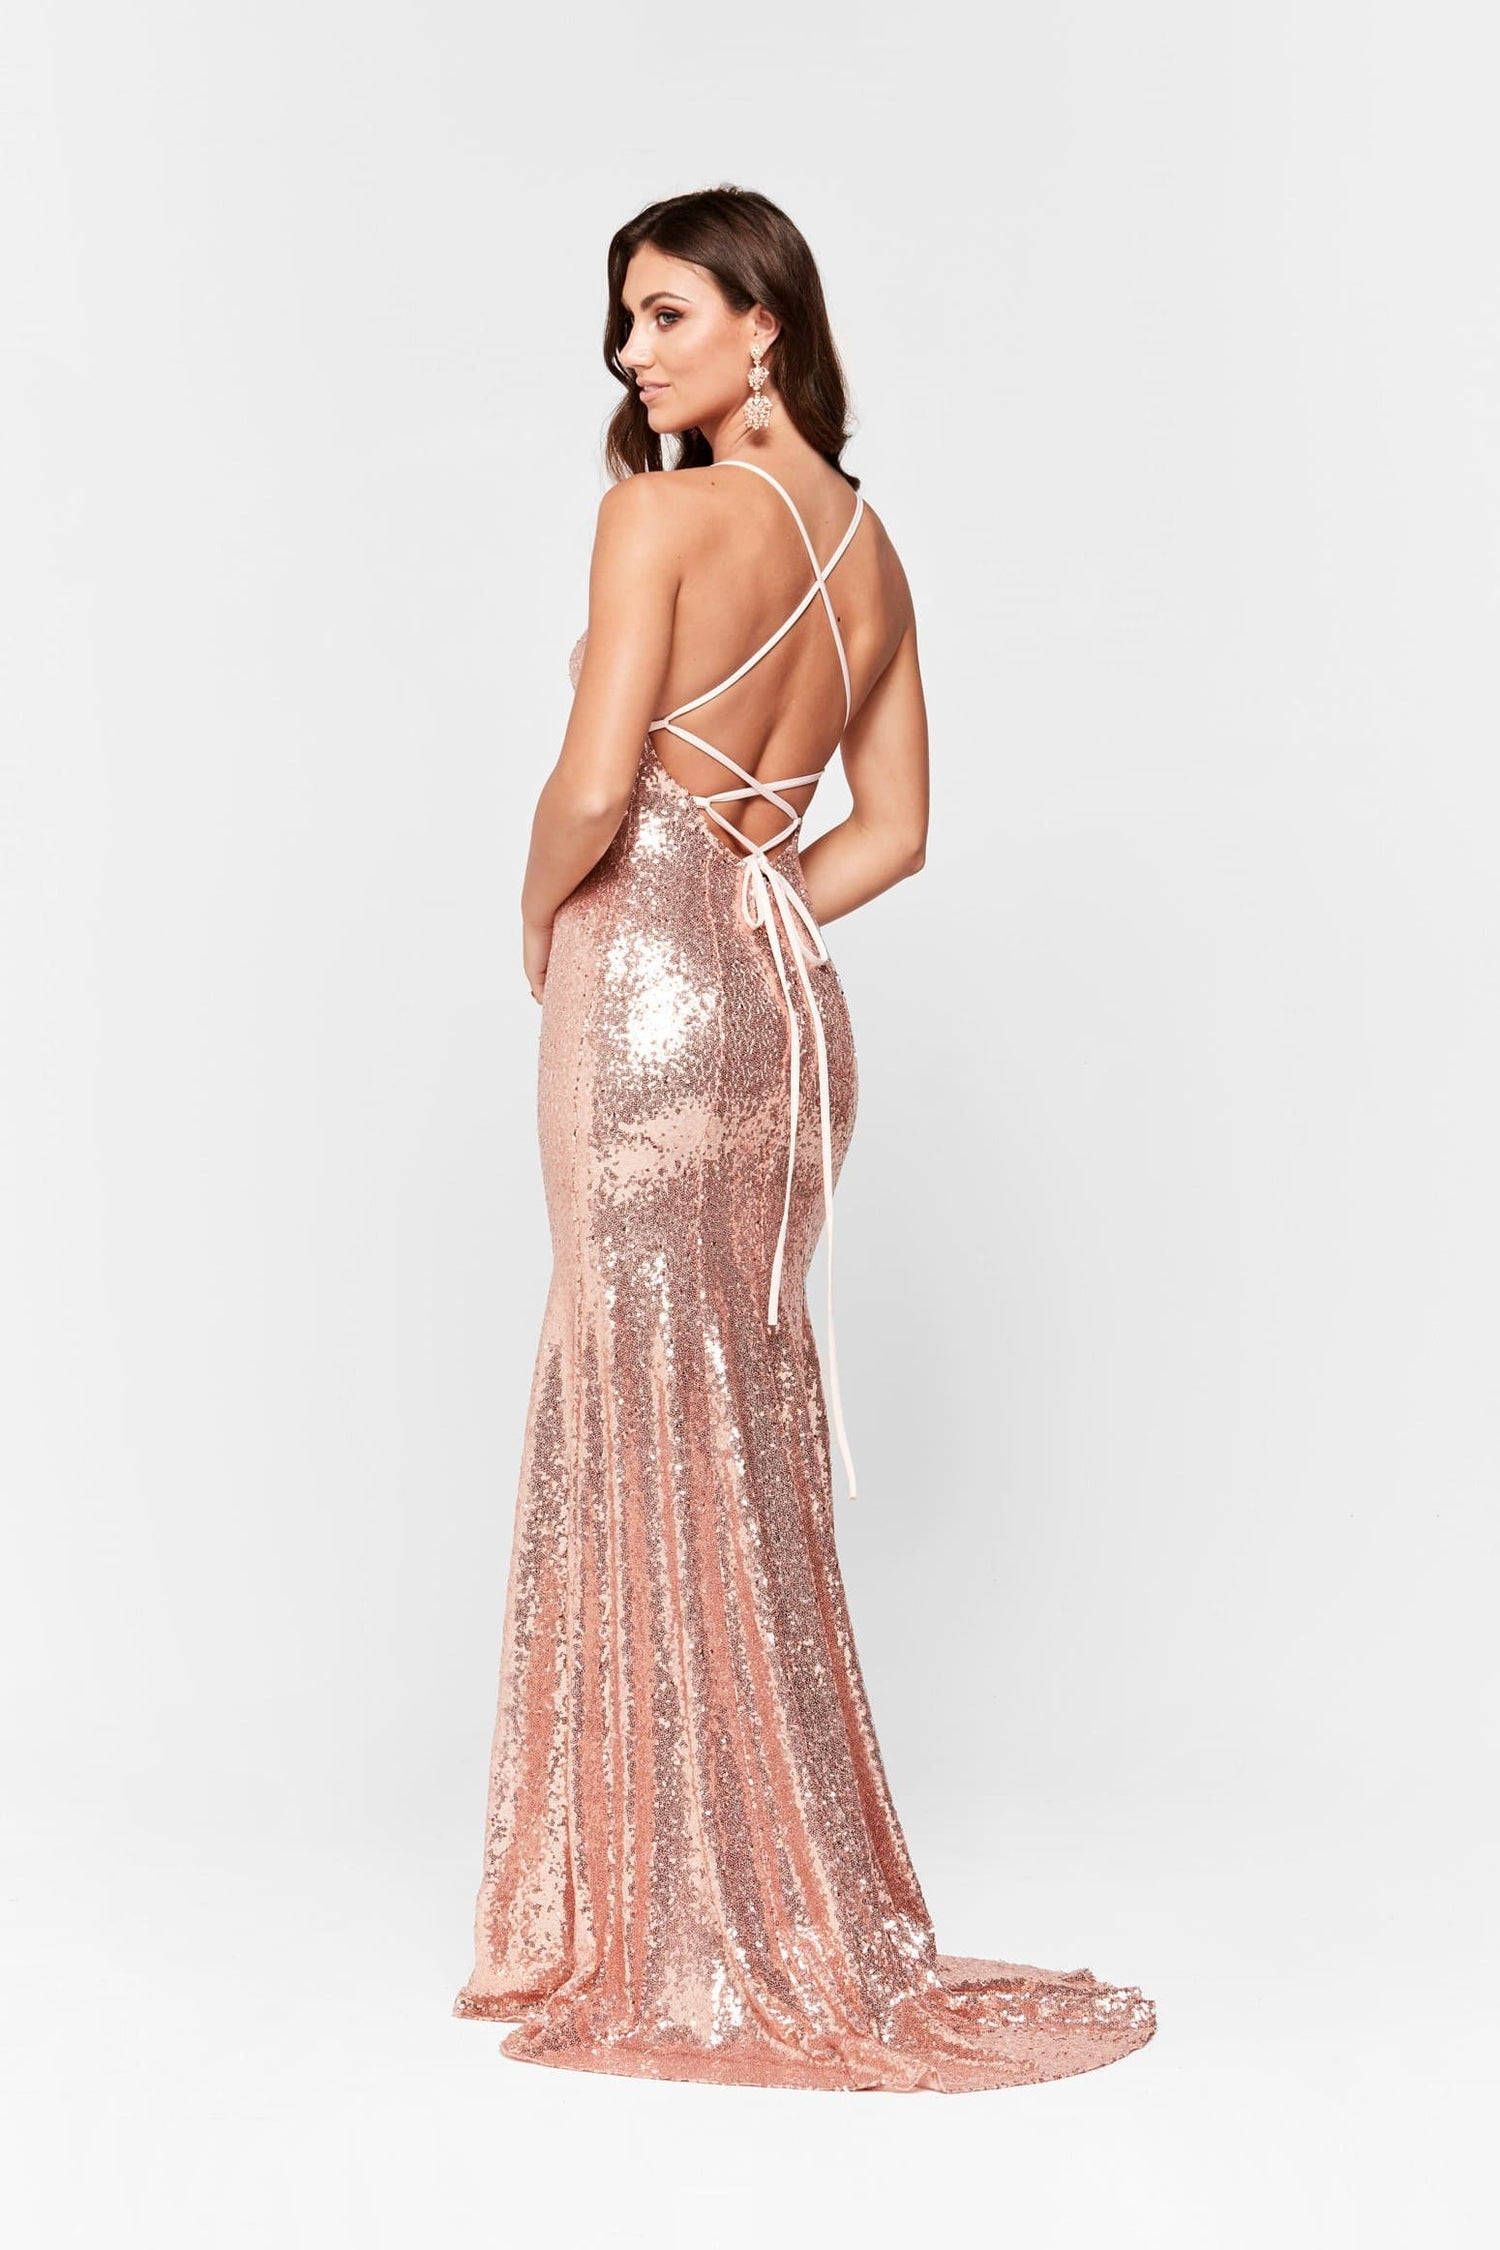 A&N Esmee - Rose Gold Sequin Gown with Lace Up Back and Square Neck